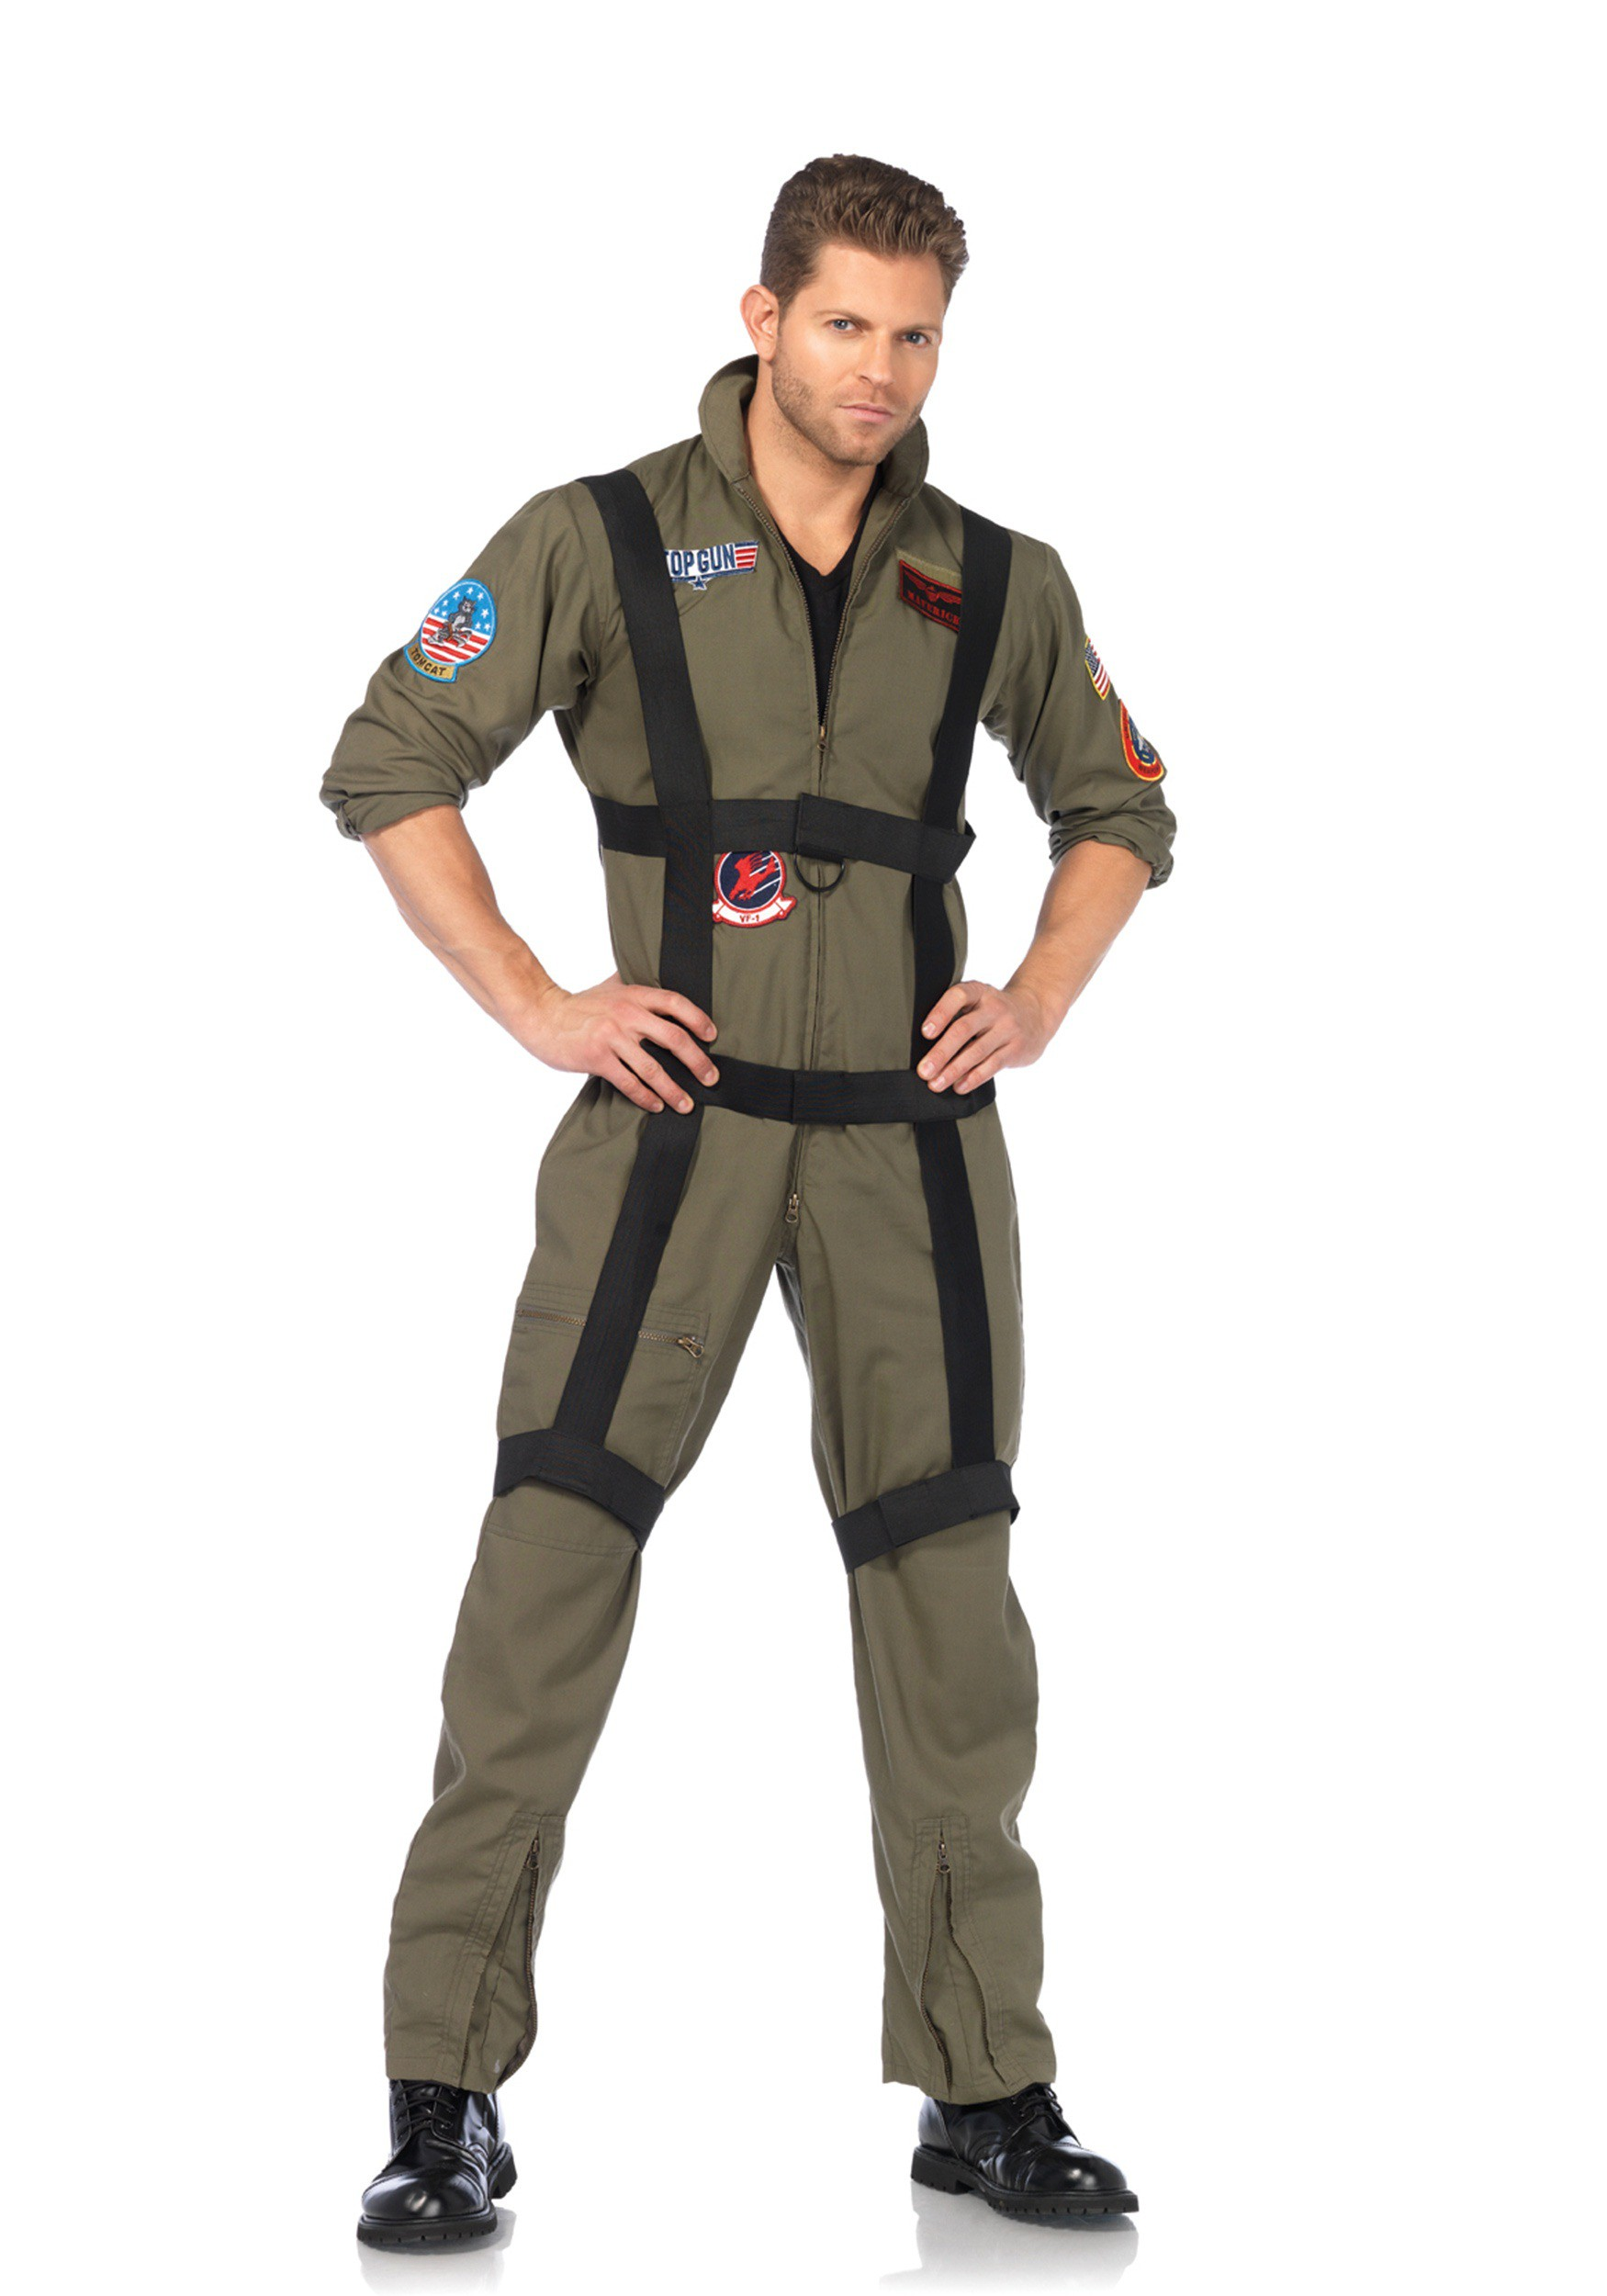 e52c705443fd Men s Top Gun Jumpsuit Costume with Harness